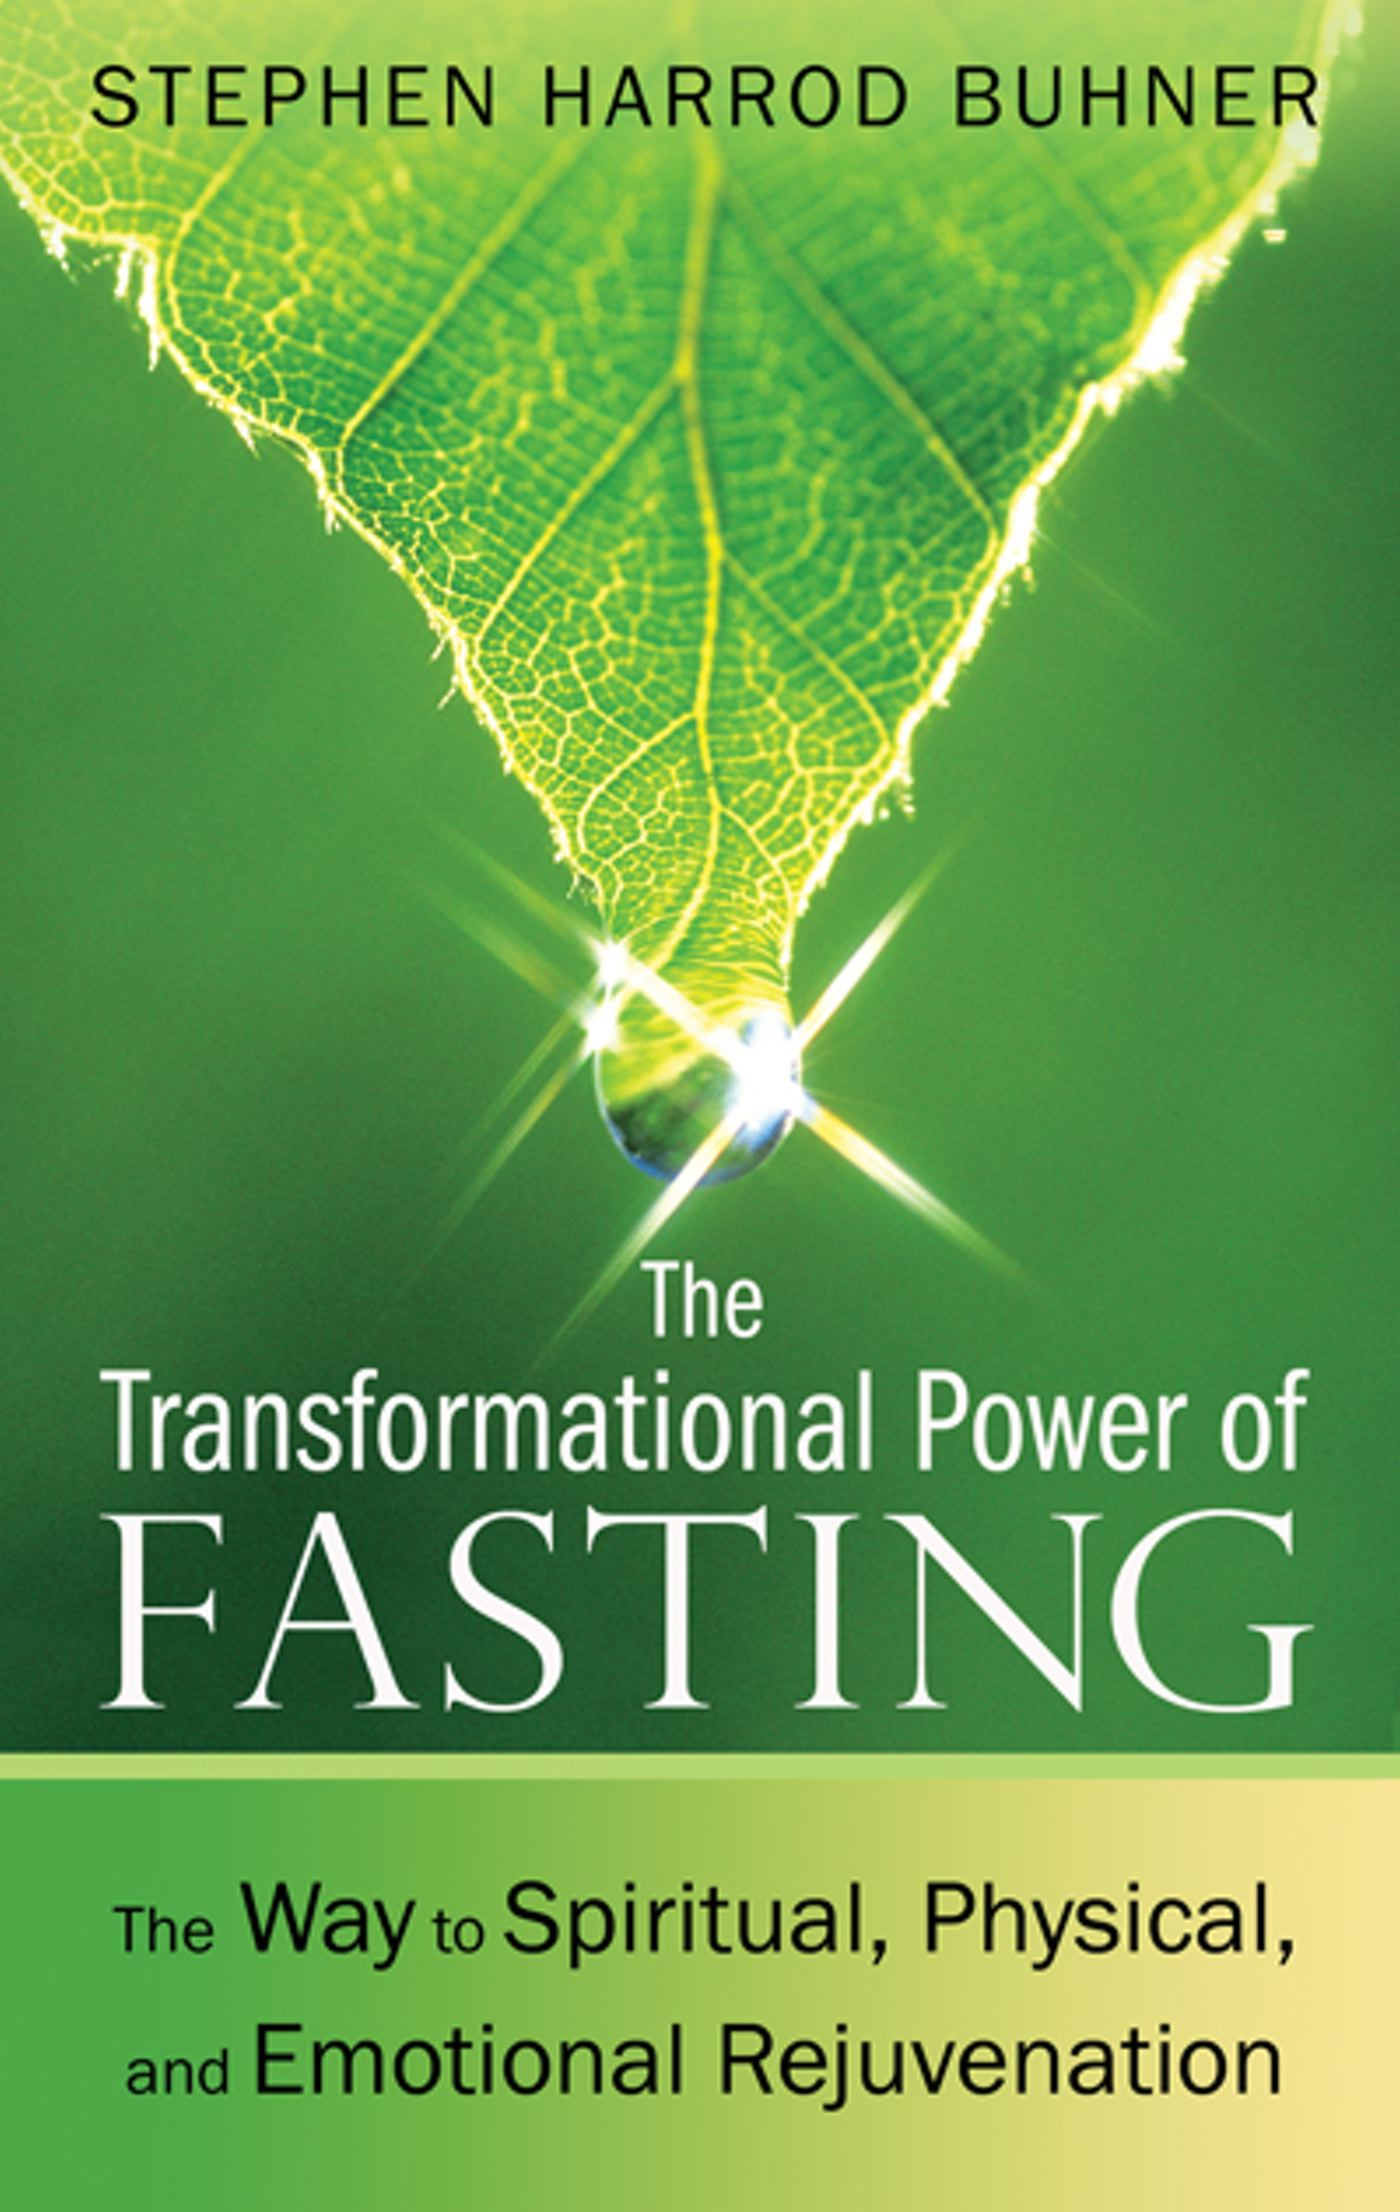 The Transformational Power of Fasting | Book by Stephen Harrod